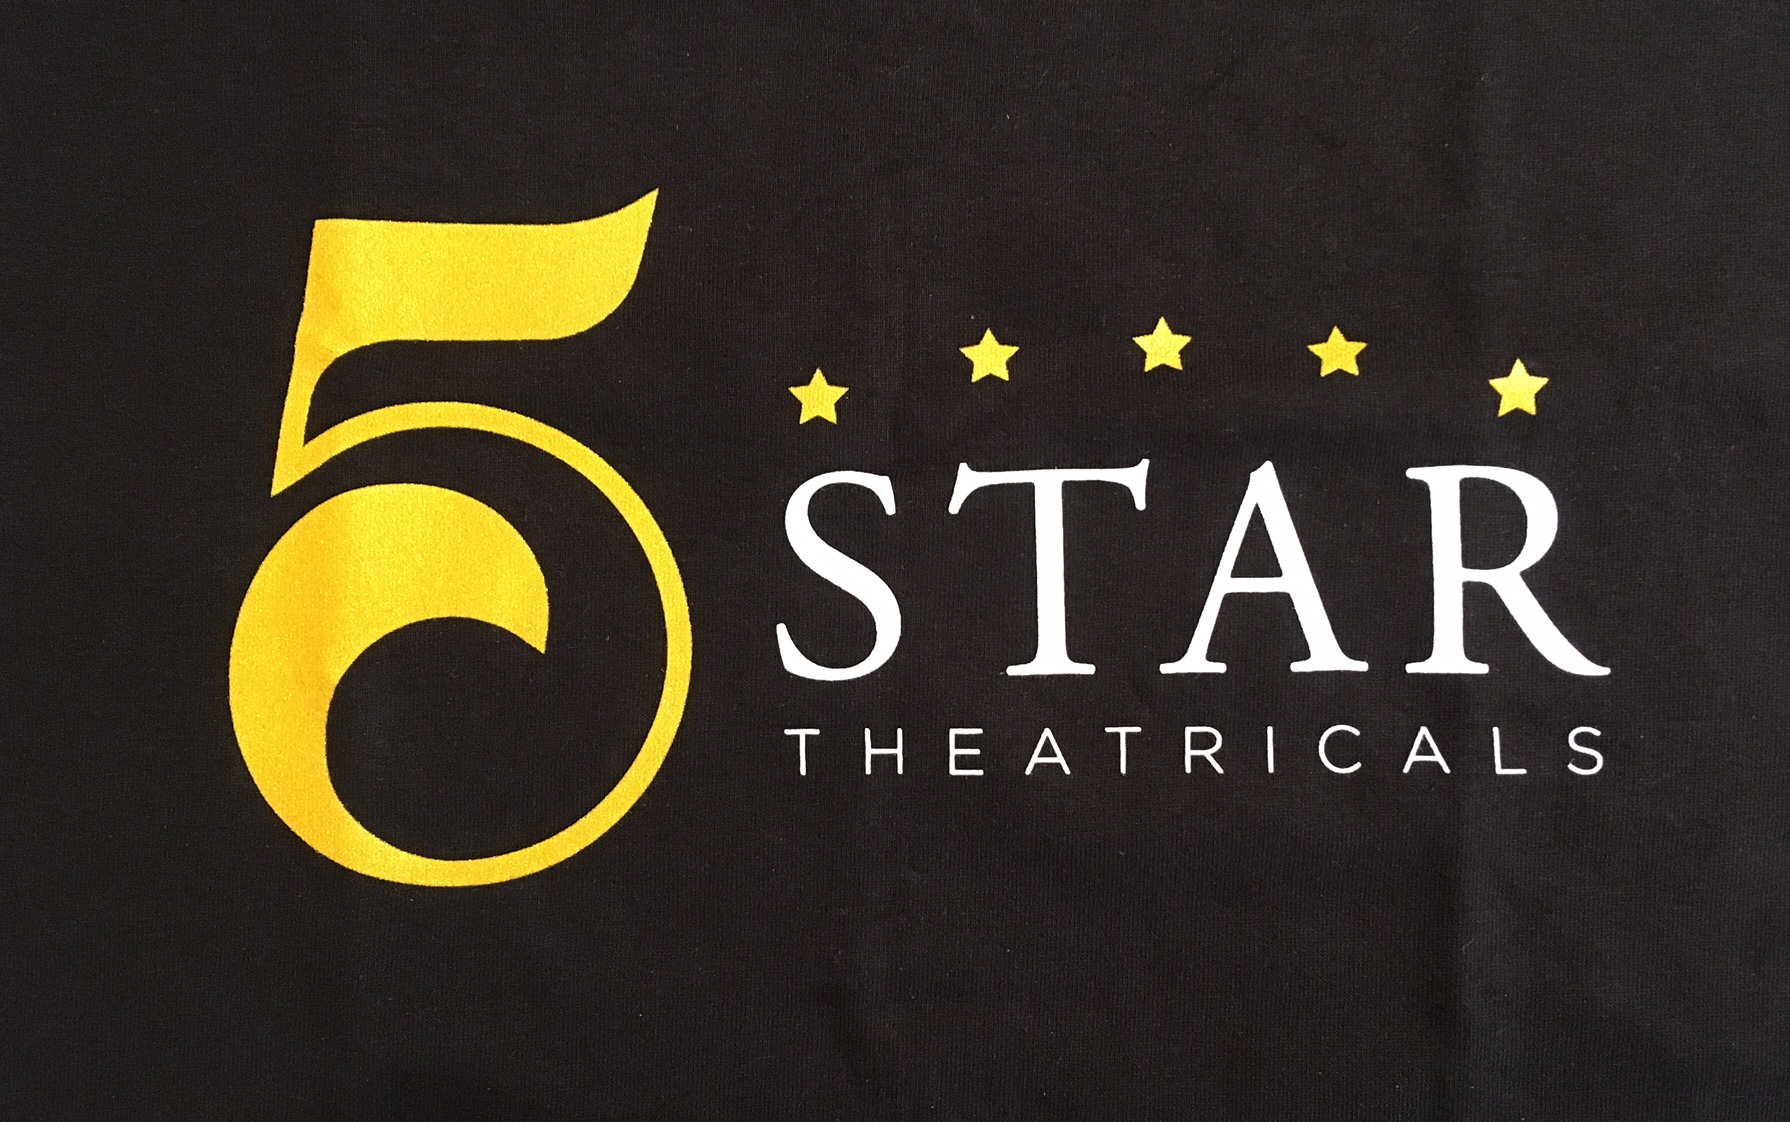 Cabrillo Music Theatre Changes Its Name To 5 Star Theatricals